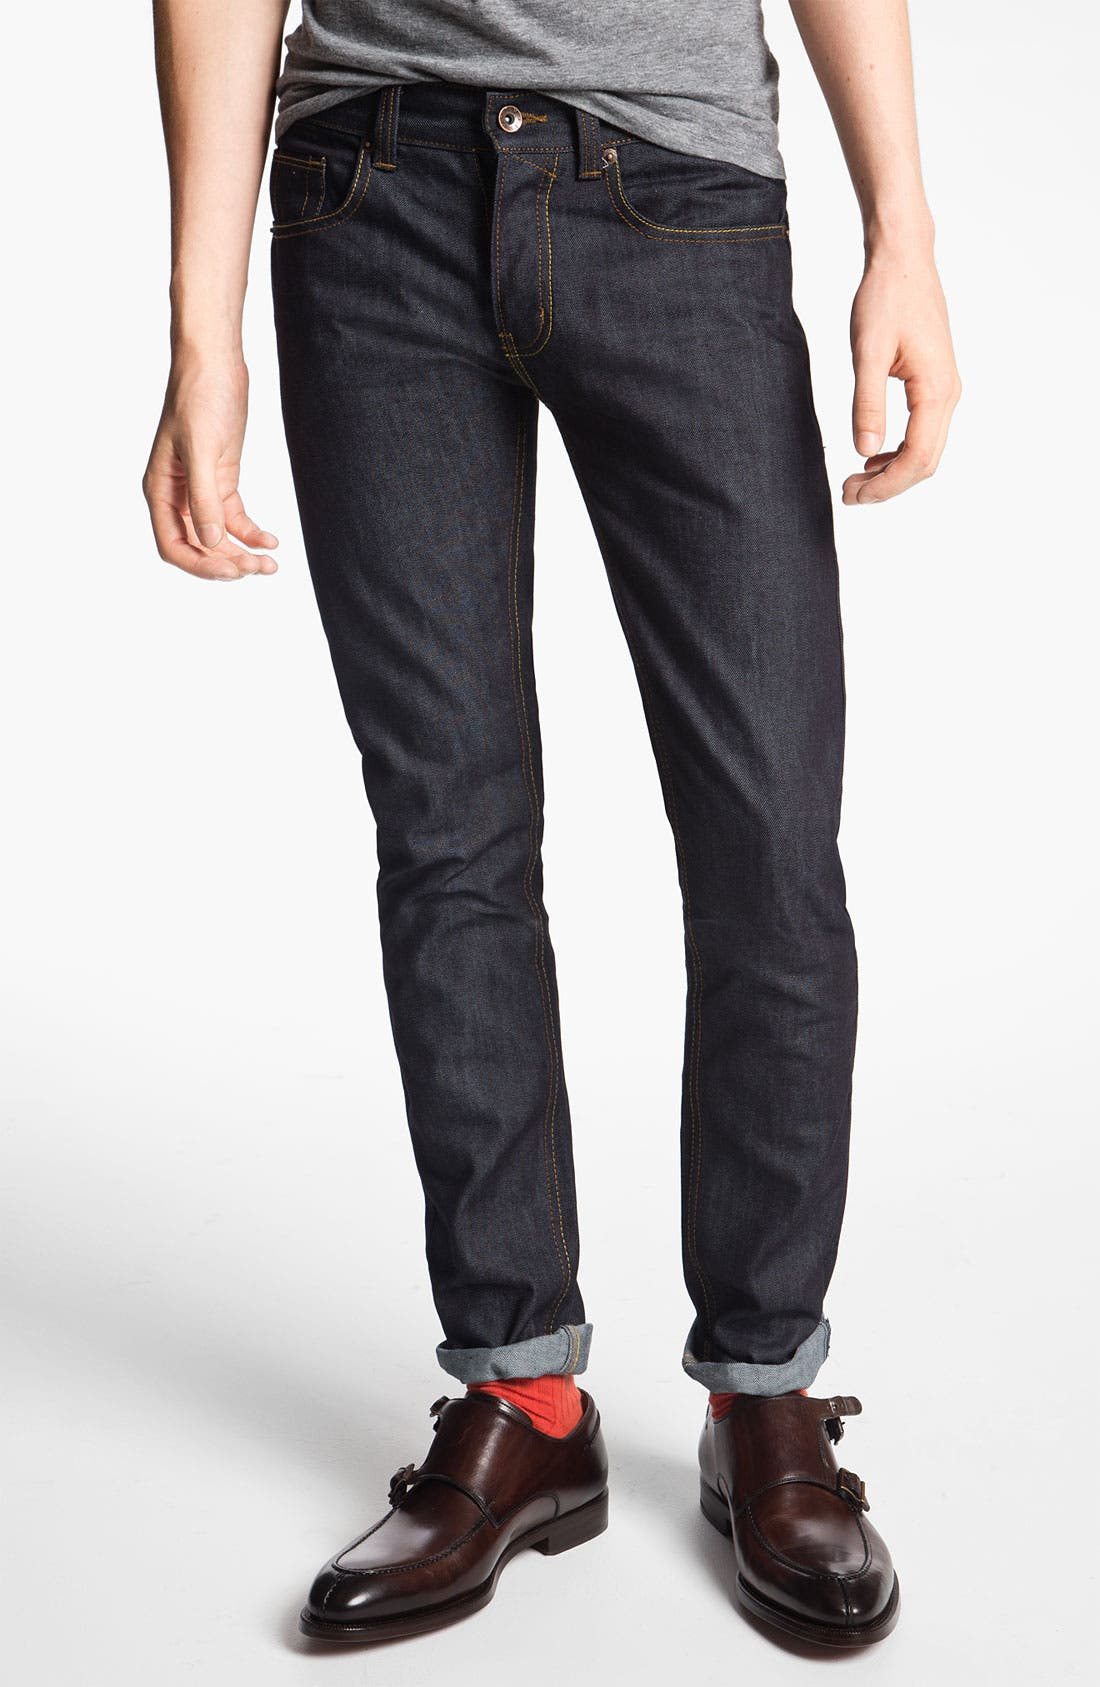 Alternate Image 1 Selected - Topman 'Flynn' Skinny Jeans (Indigo)